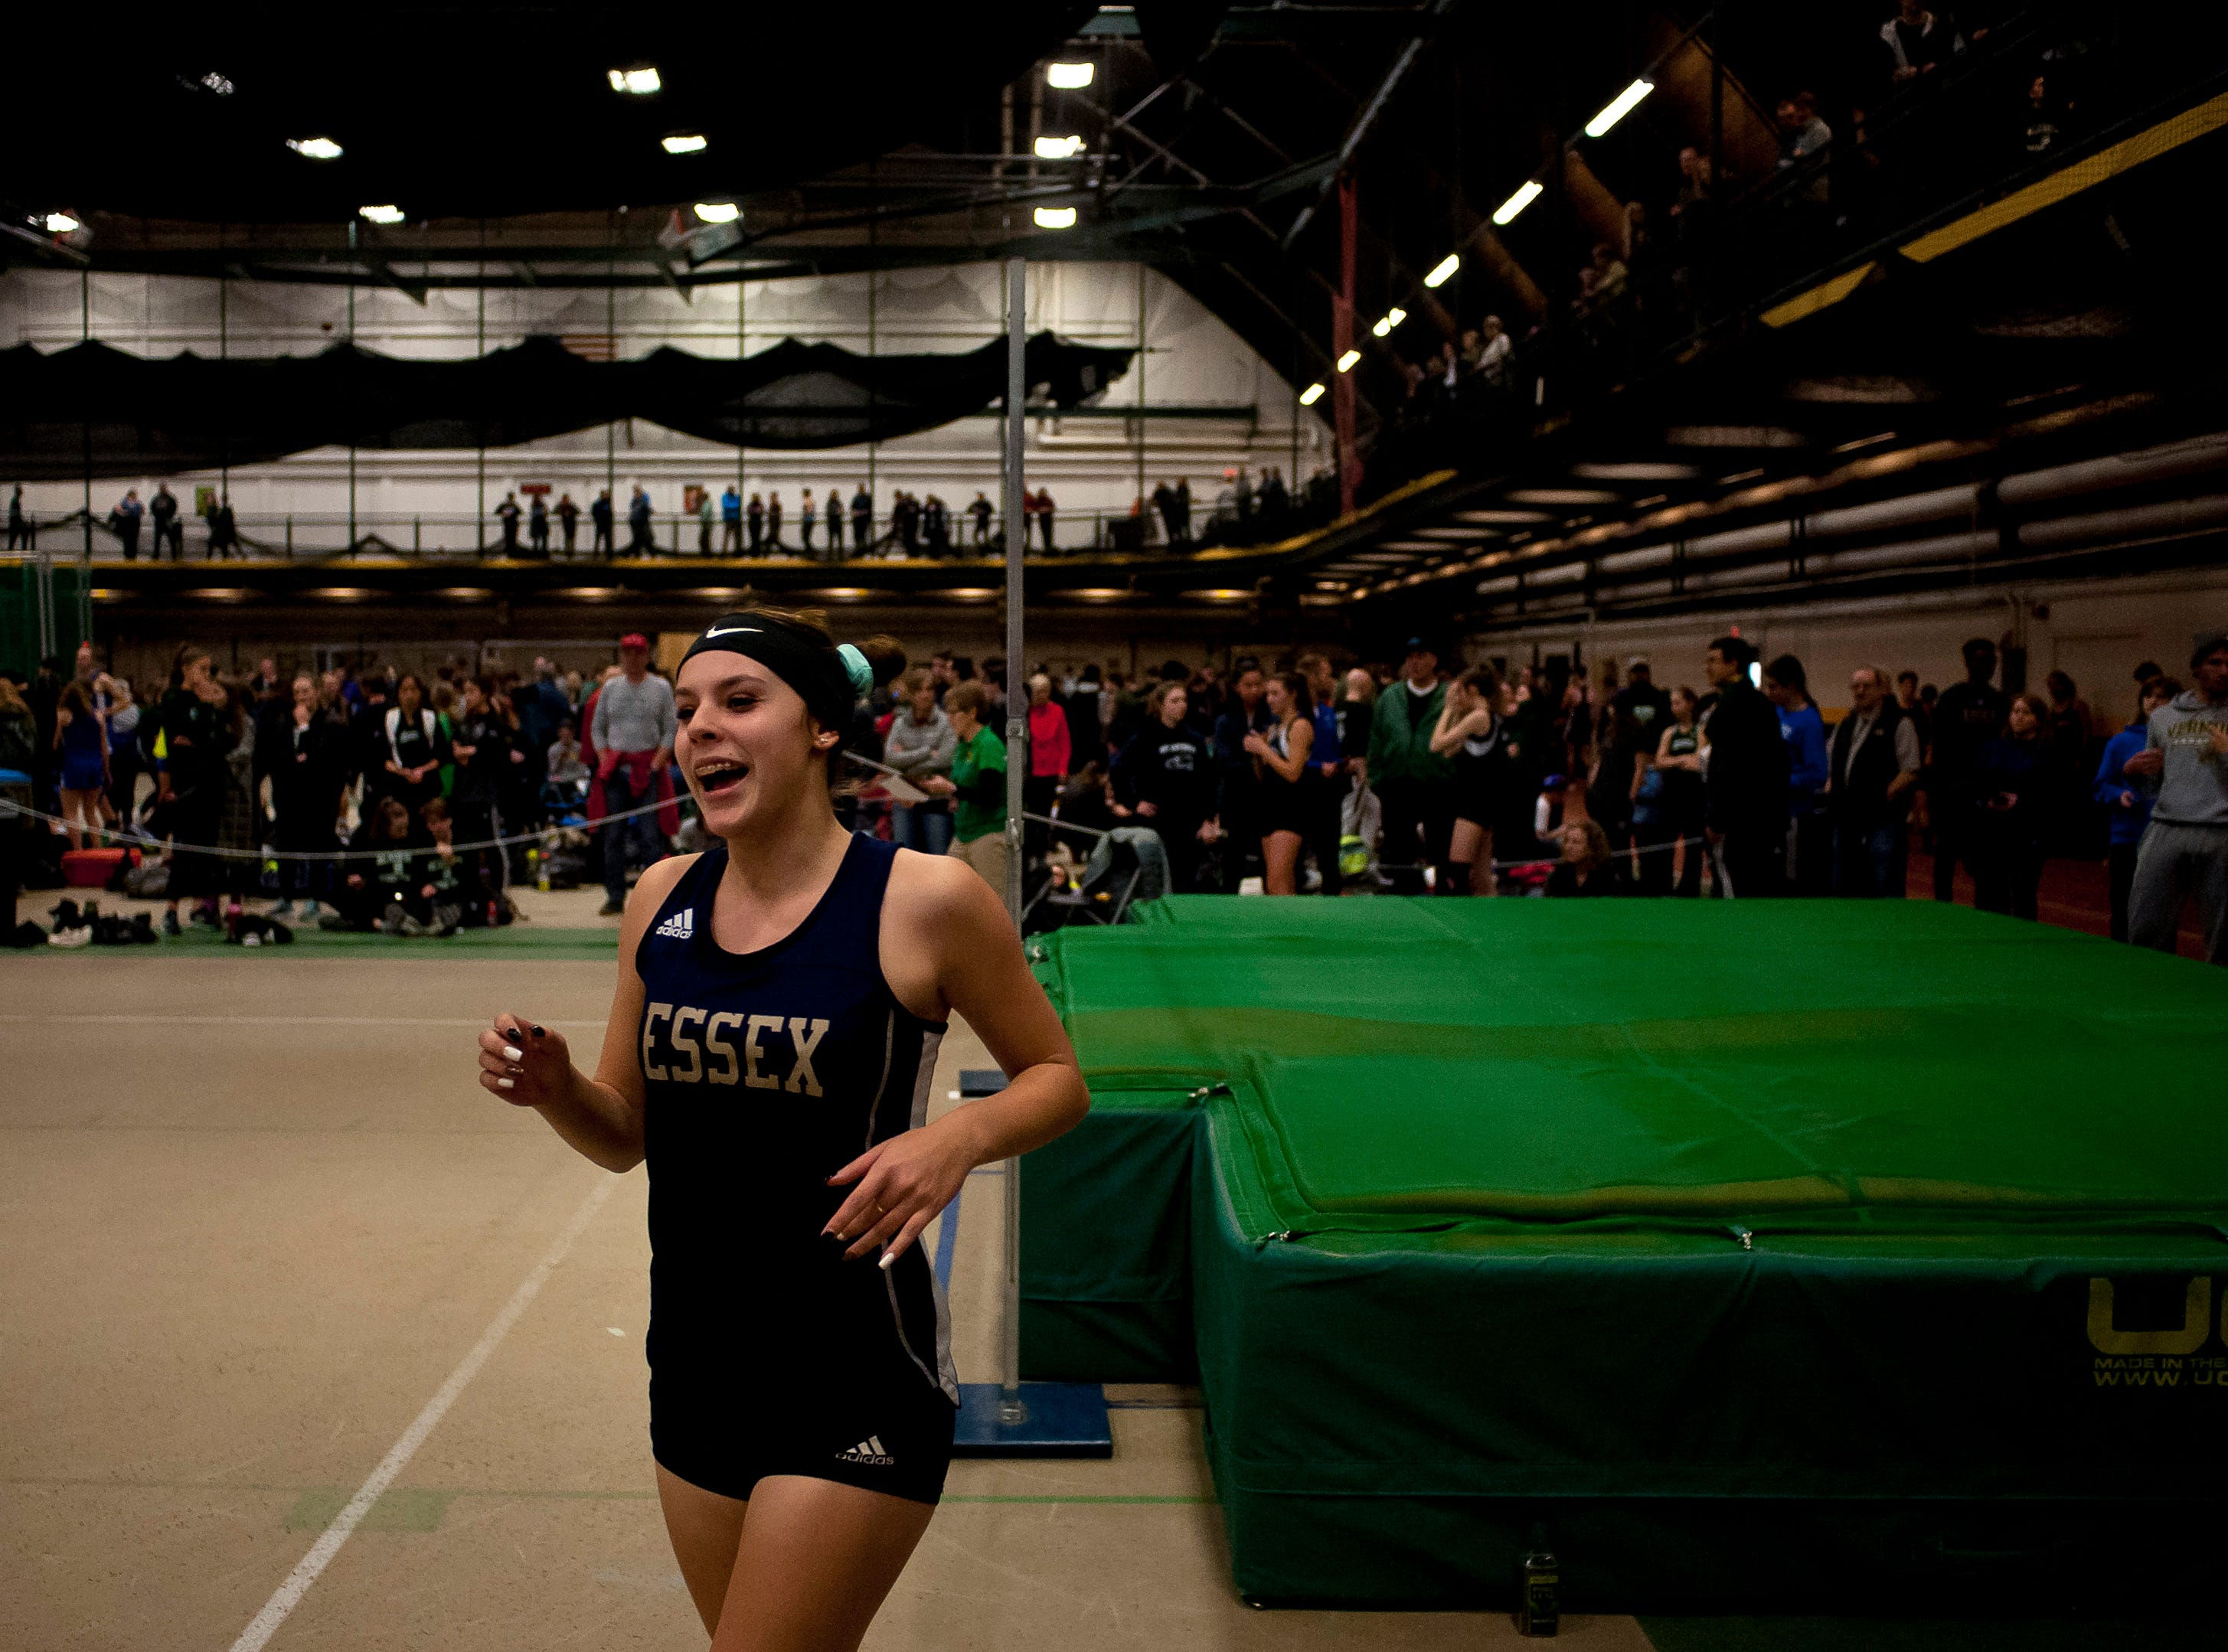 Essex's Hannah Neddo reacts after a successful high jump attempt at the high school indoor track state championships at the University of Vermont on Saturday.